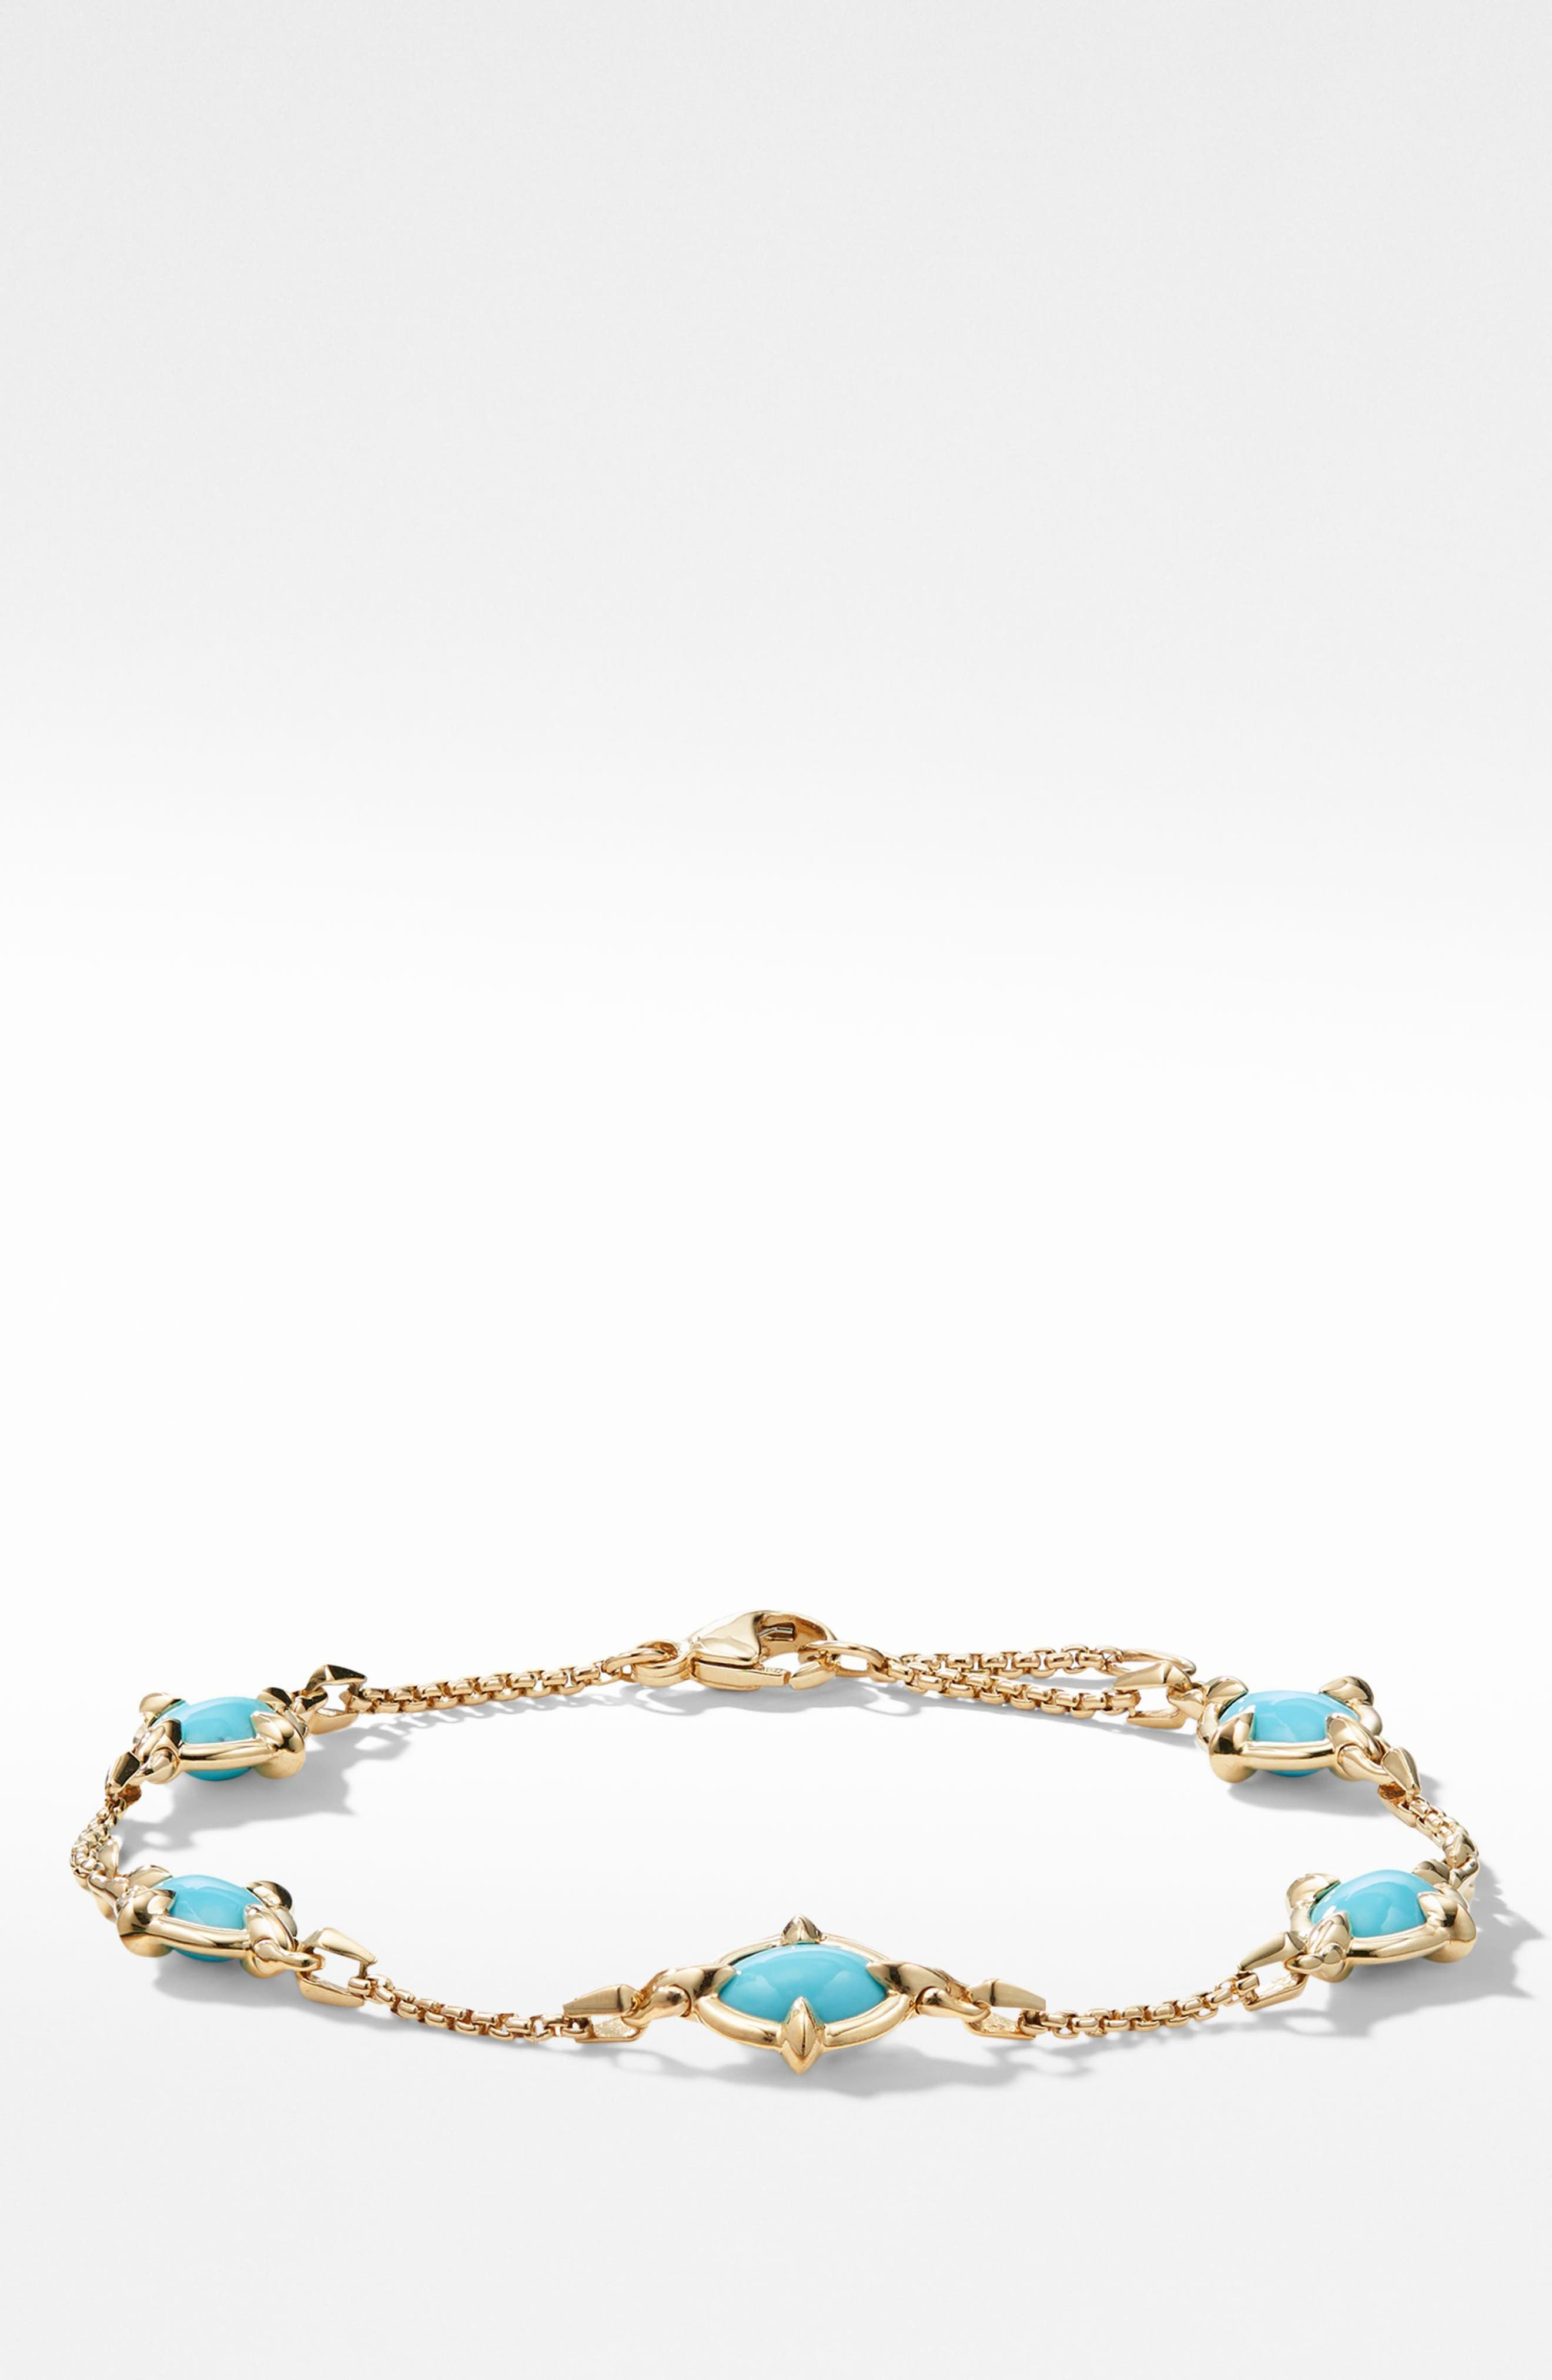 Chatelaine<sup>®</sup> Chain Bracelet in 18K Gold with Turquoise,                             Main thumbnail 1, color,                             440